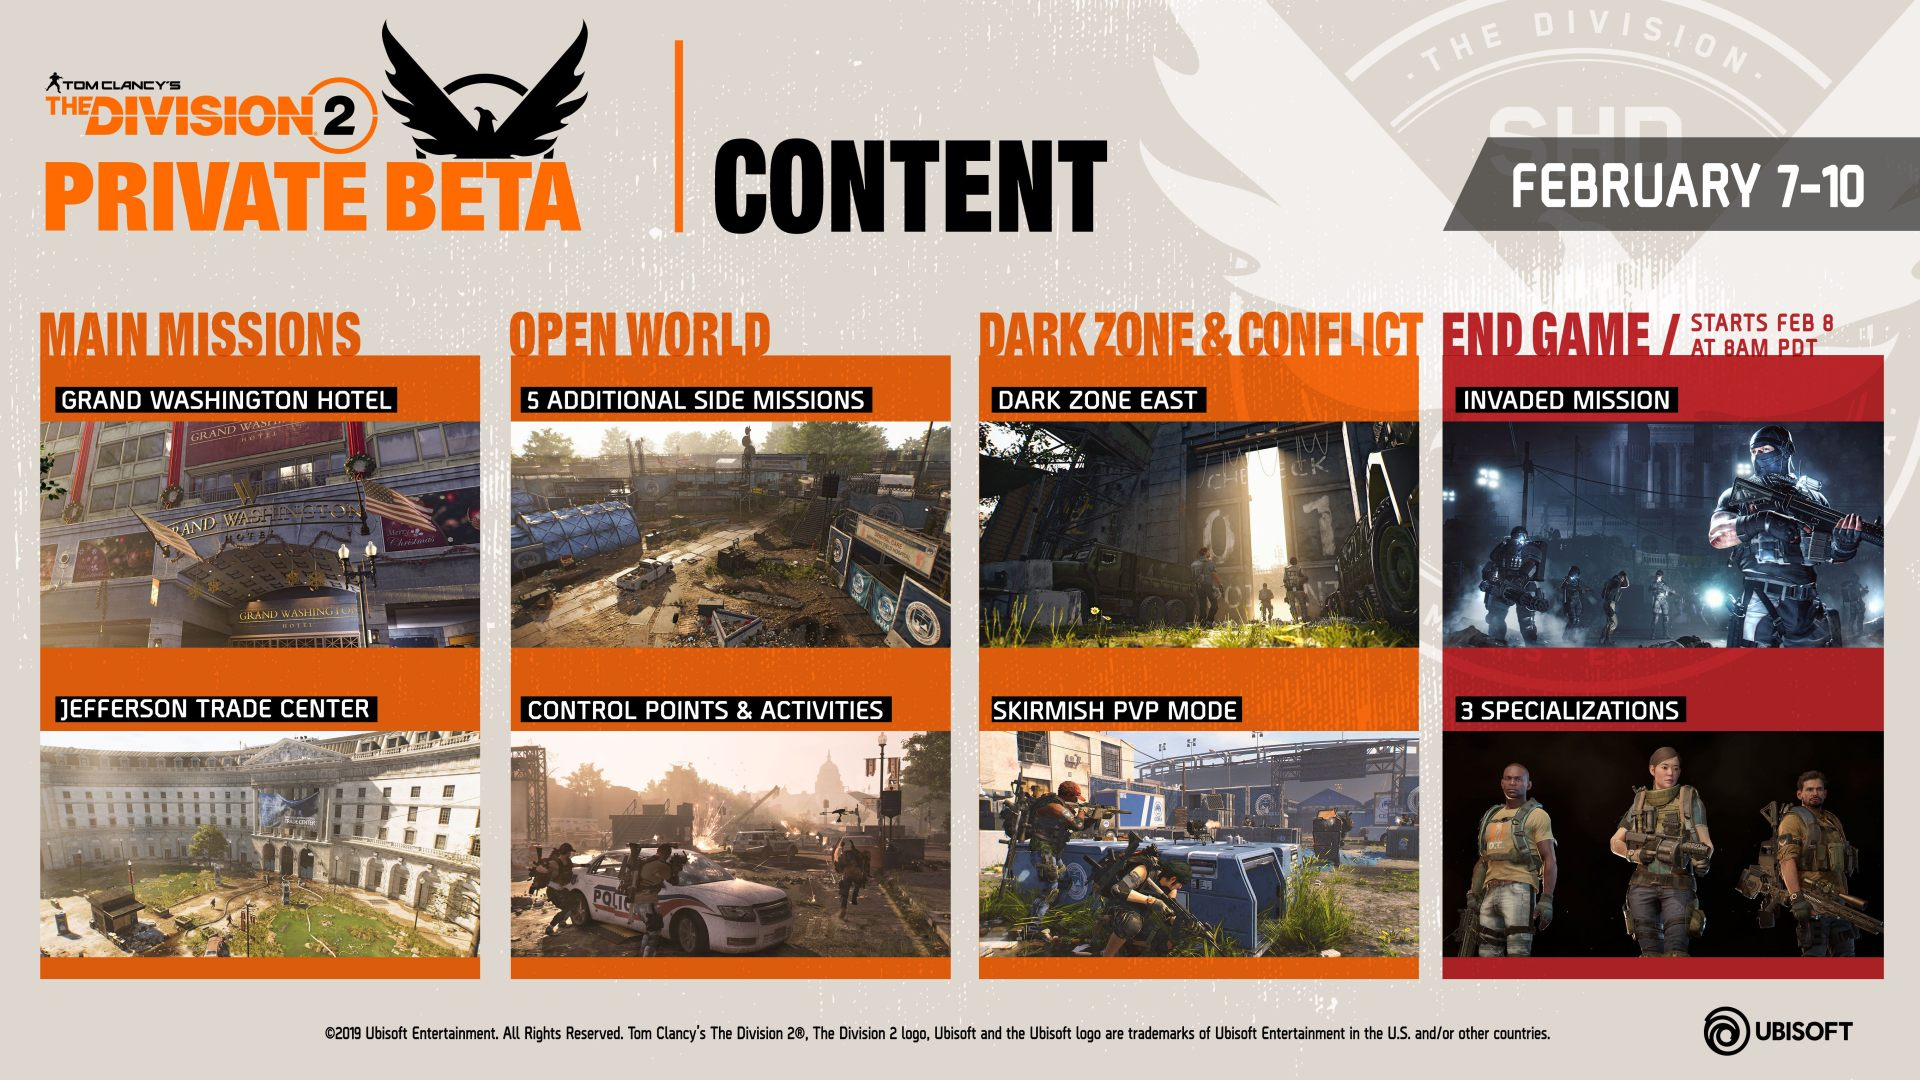 The Division 2's Controversial Marketing Email Prompts Ubisoft Apology